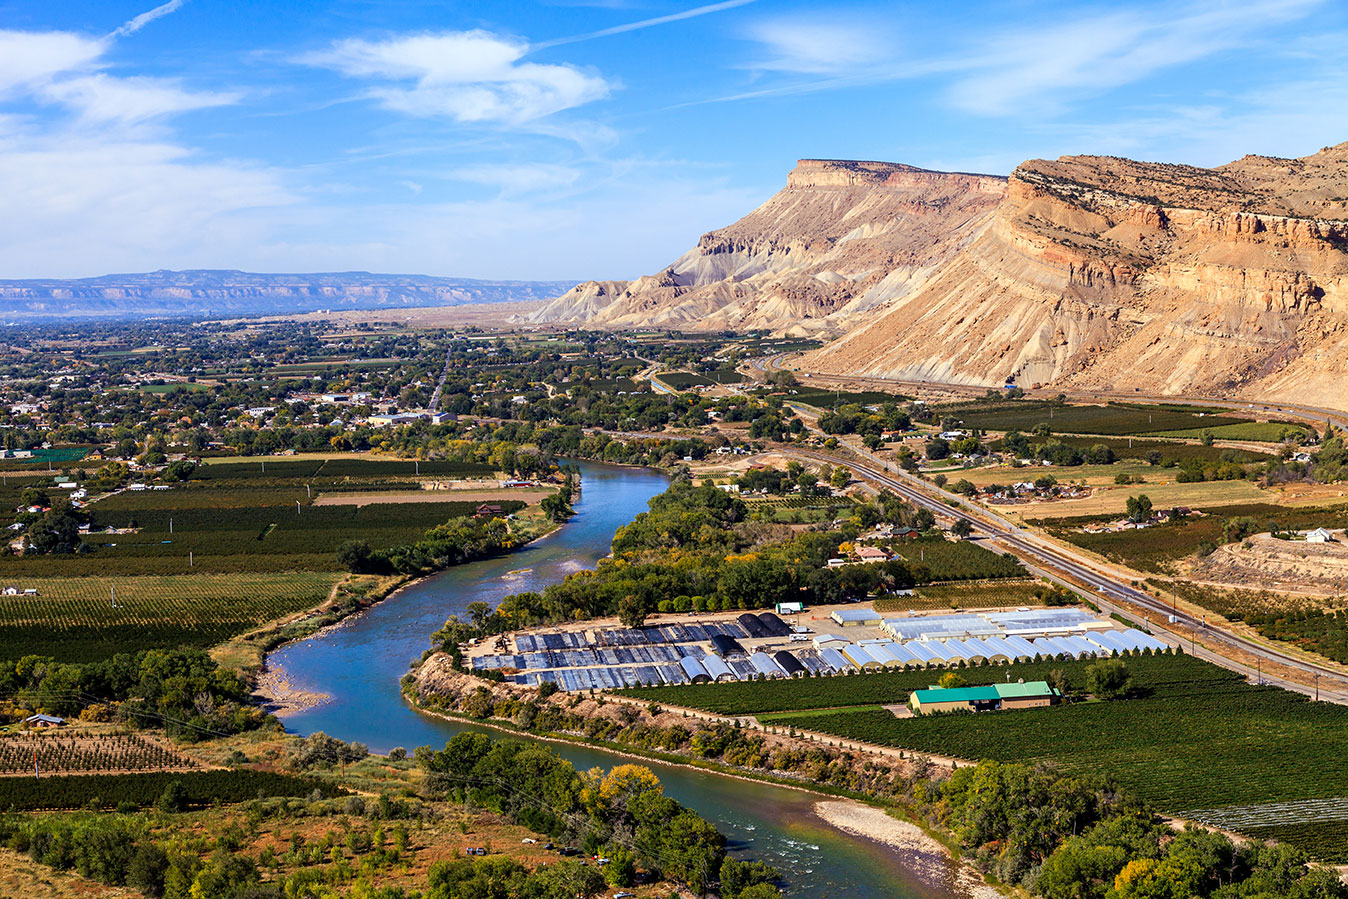 A winding river cuts through a valley near the mountains in Grand Junction